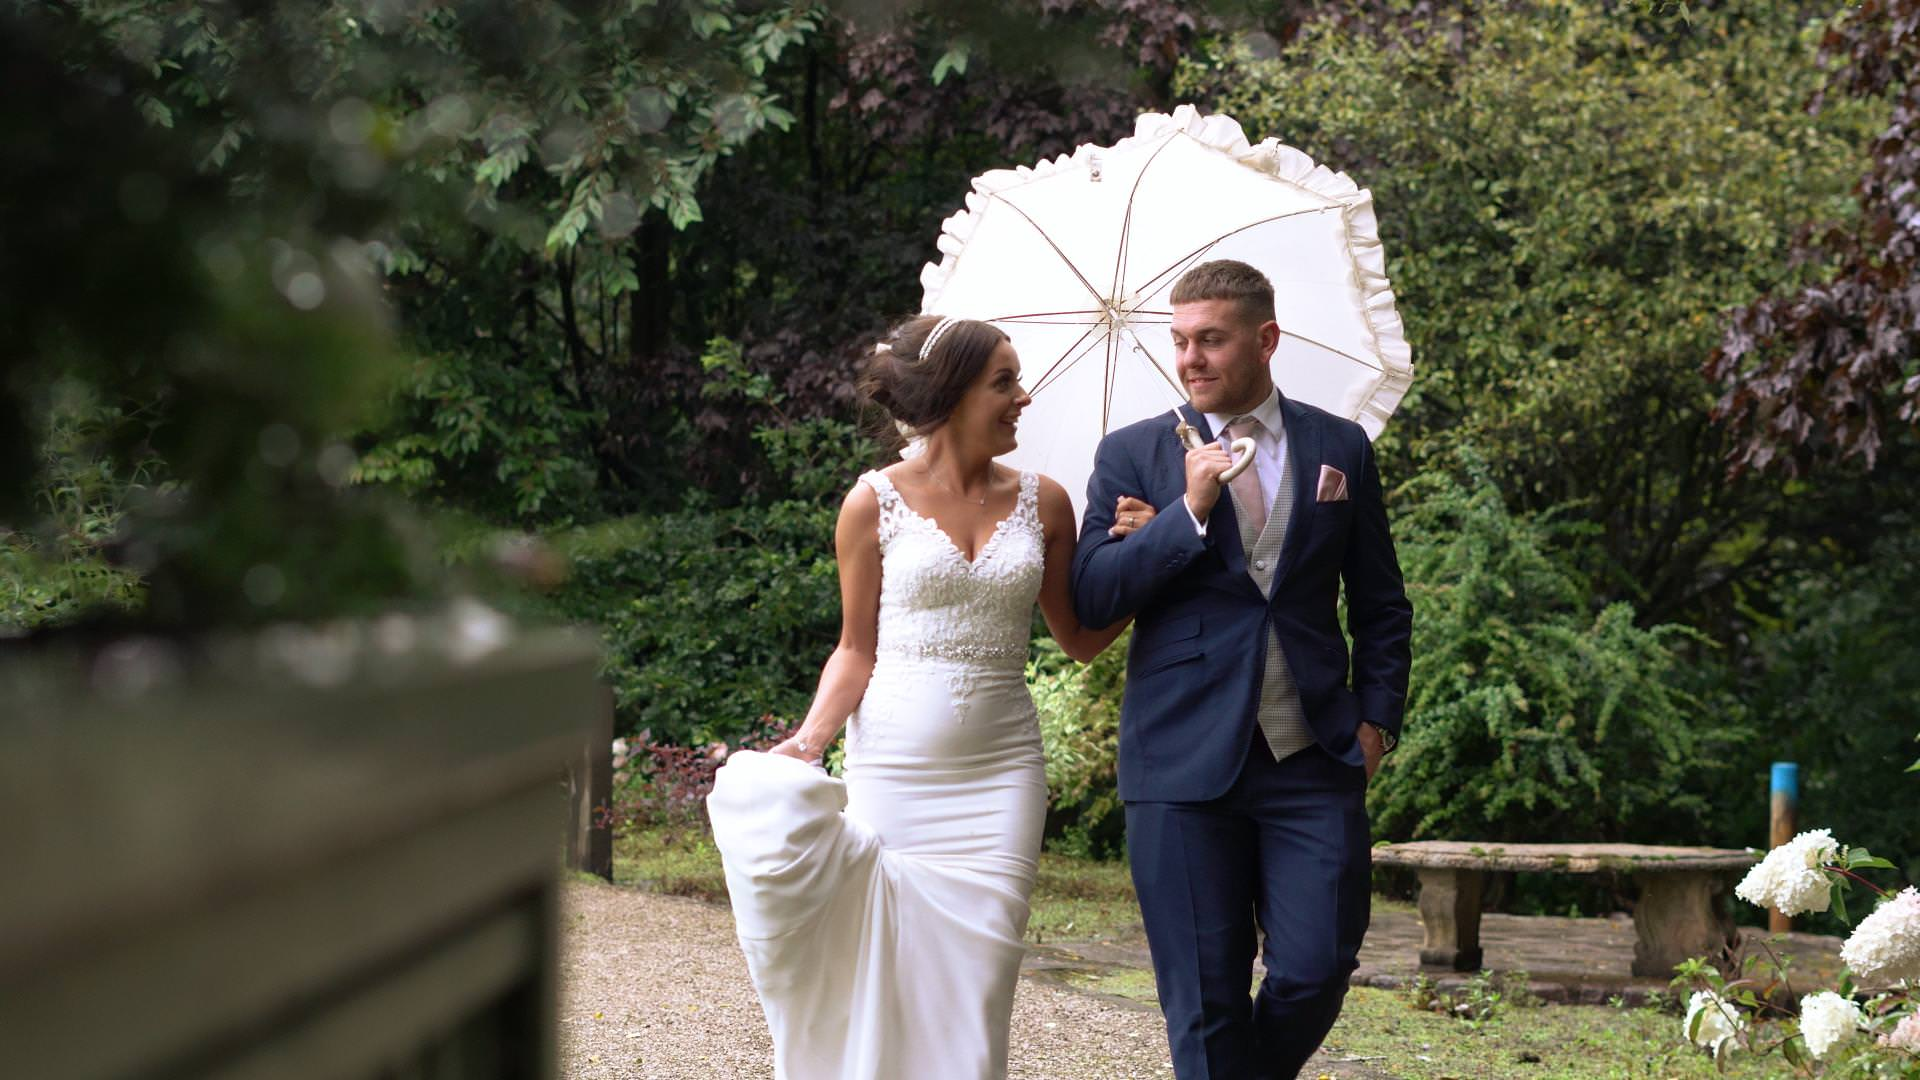 wedding videographer still of a bride and groom walking in the rain at Moddershall Oaks in Staffordshire